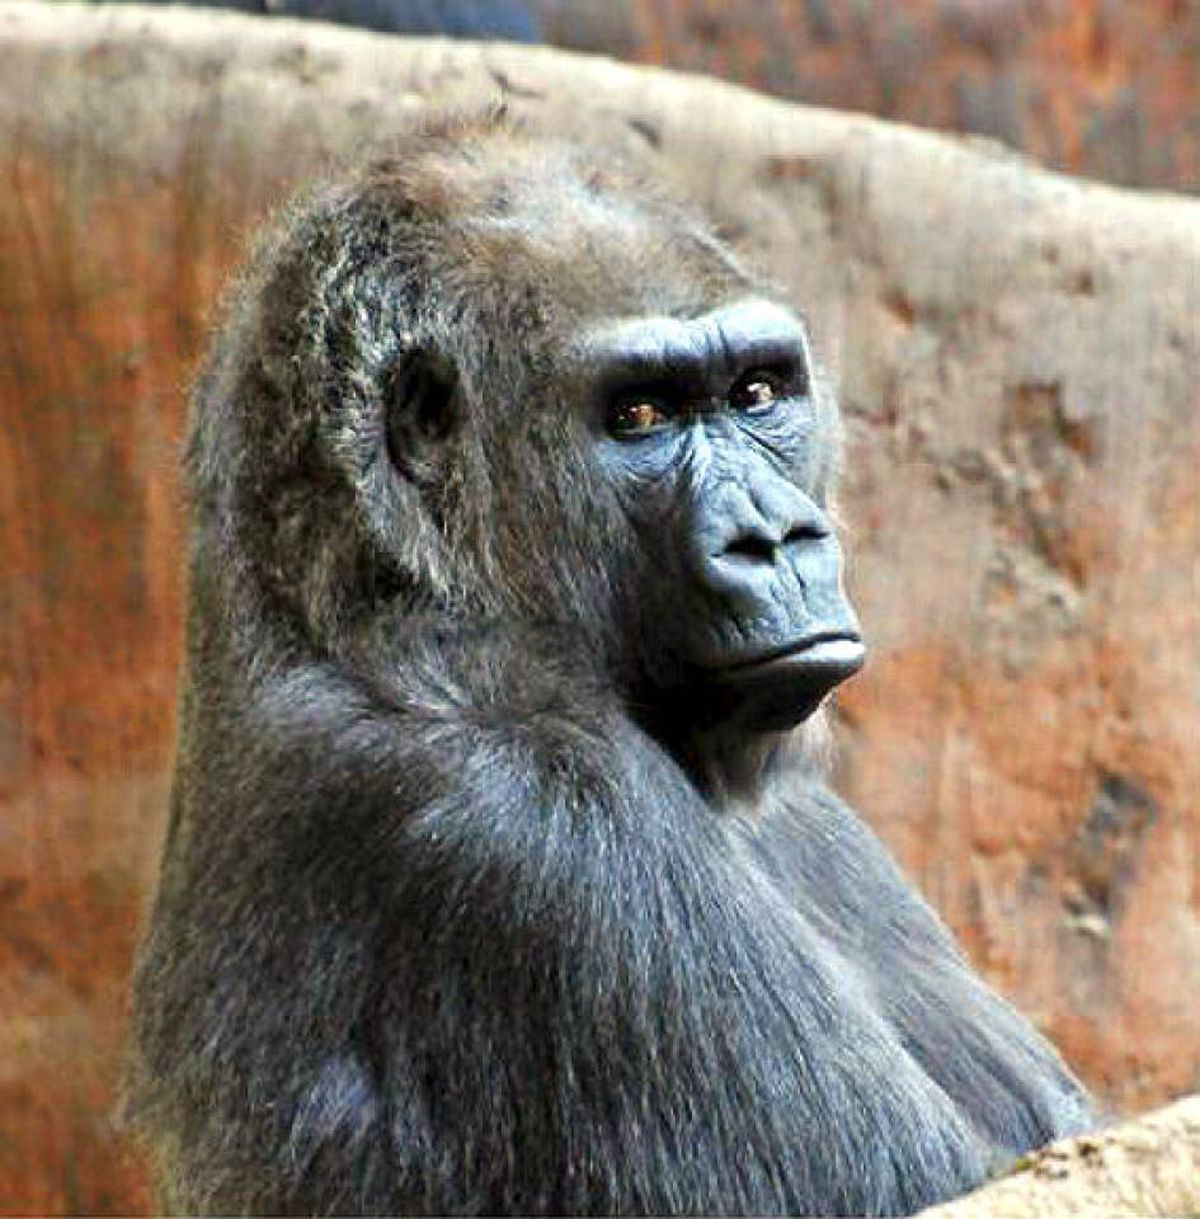 The Toronto Zoo said Tuesday that Samantha, a 37-year-old gorilla, had to be euthanized after suffering a second serious stroke.